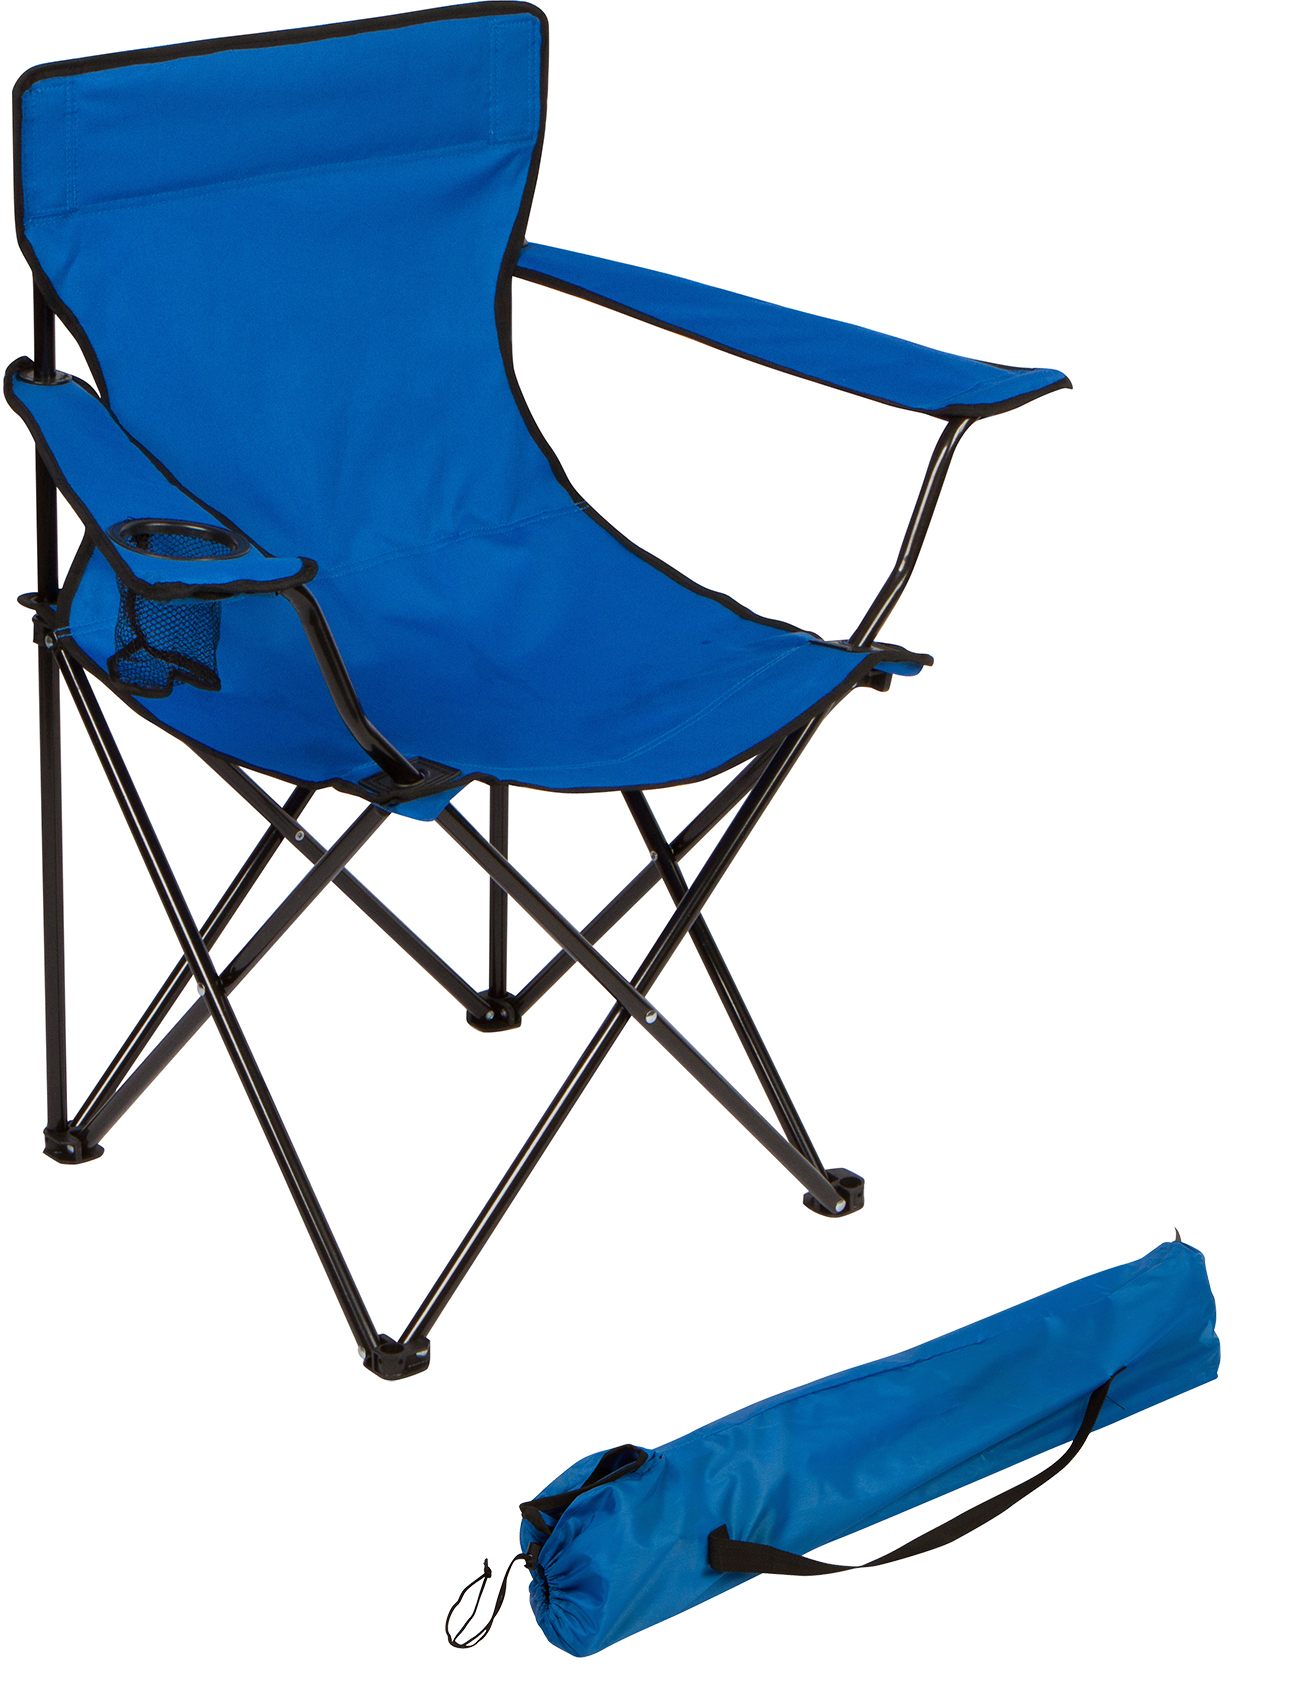 portable folding chairs bedroom target camp chair by trademark innovations blue walmart com